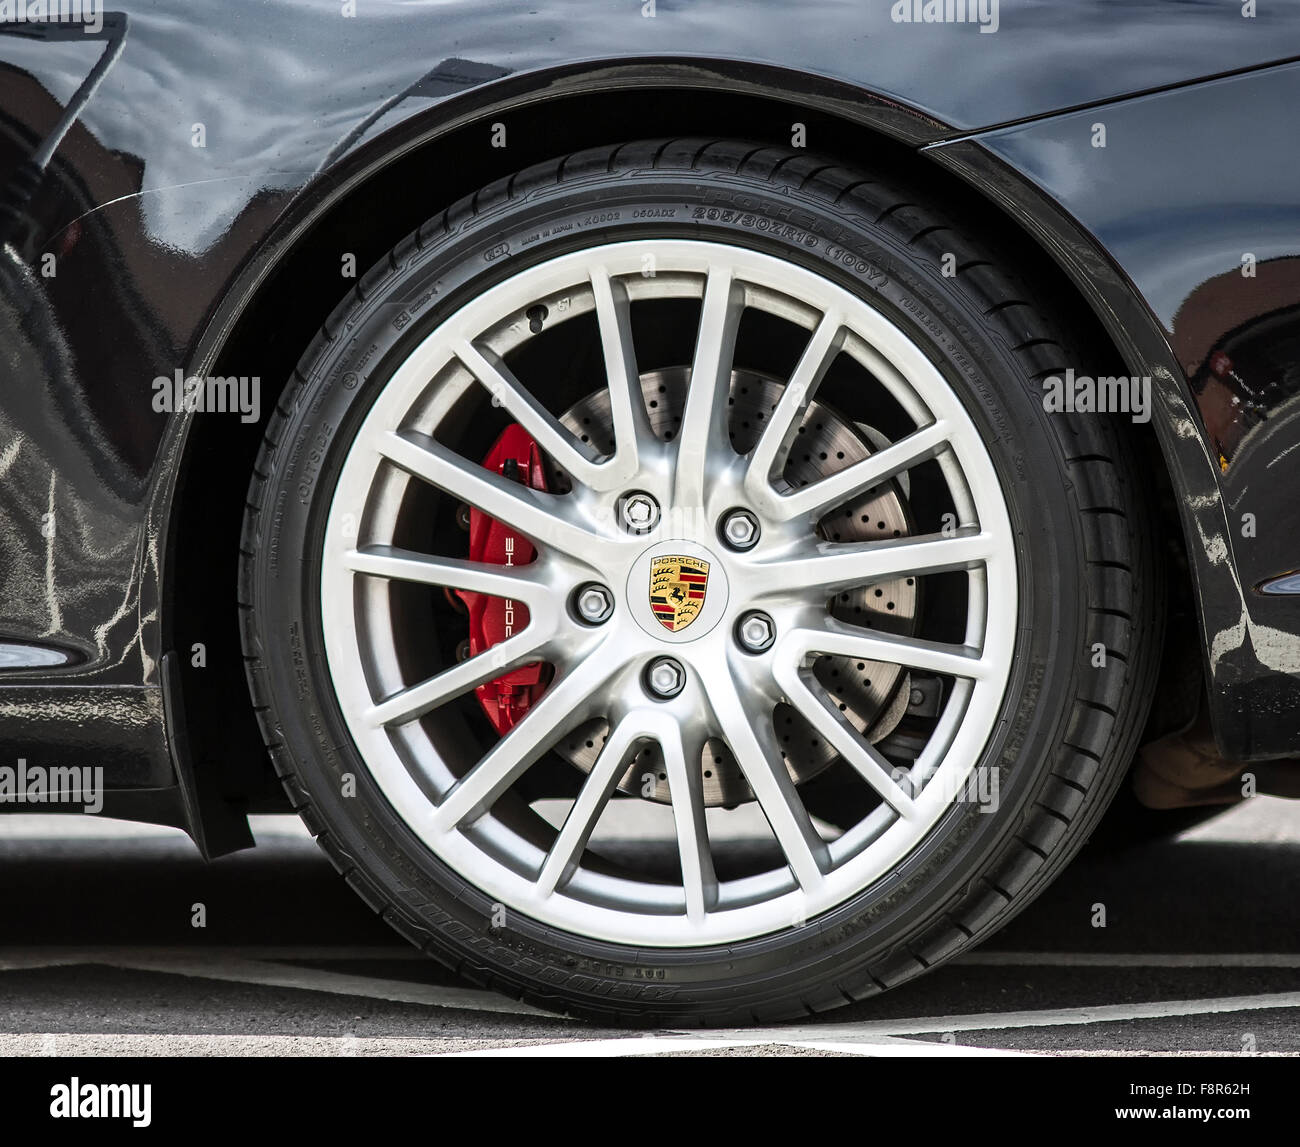 Porsche wheel and tyre - Stock Image